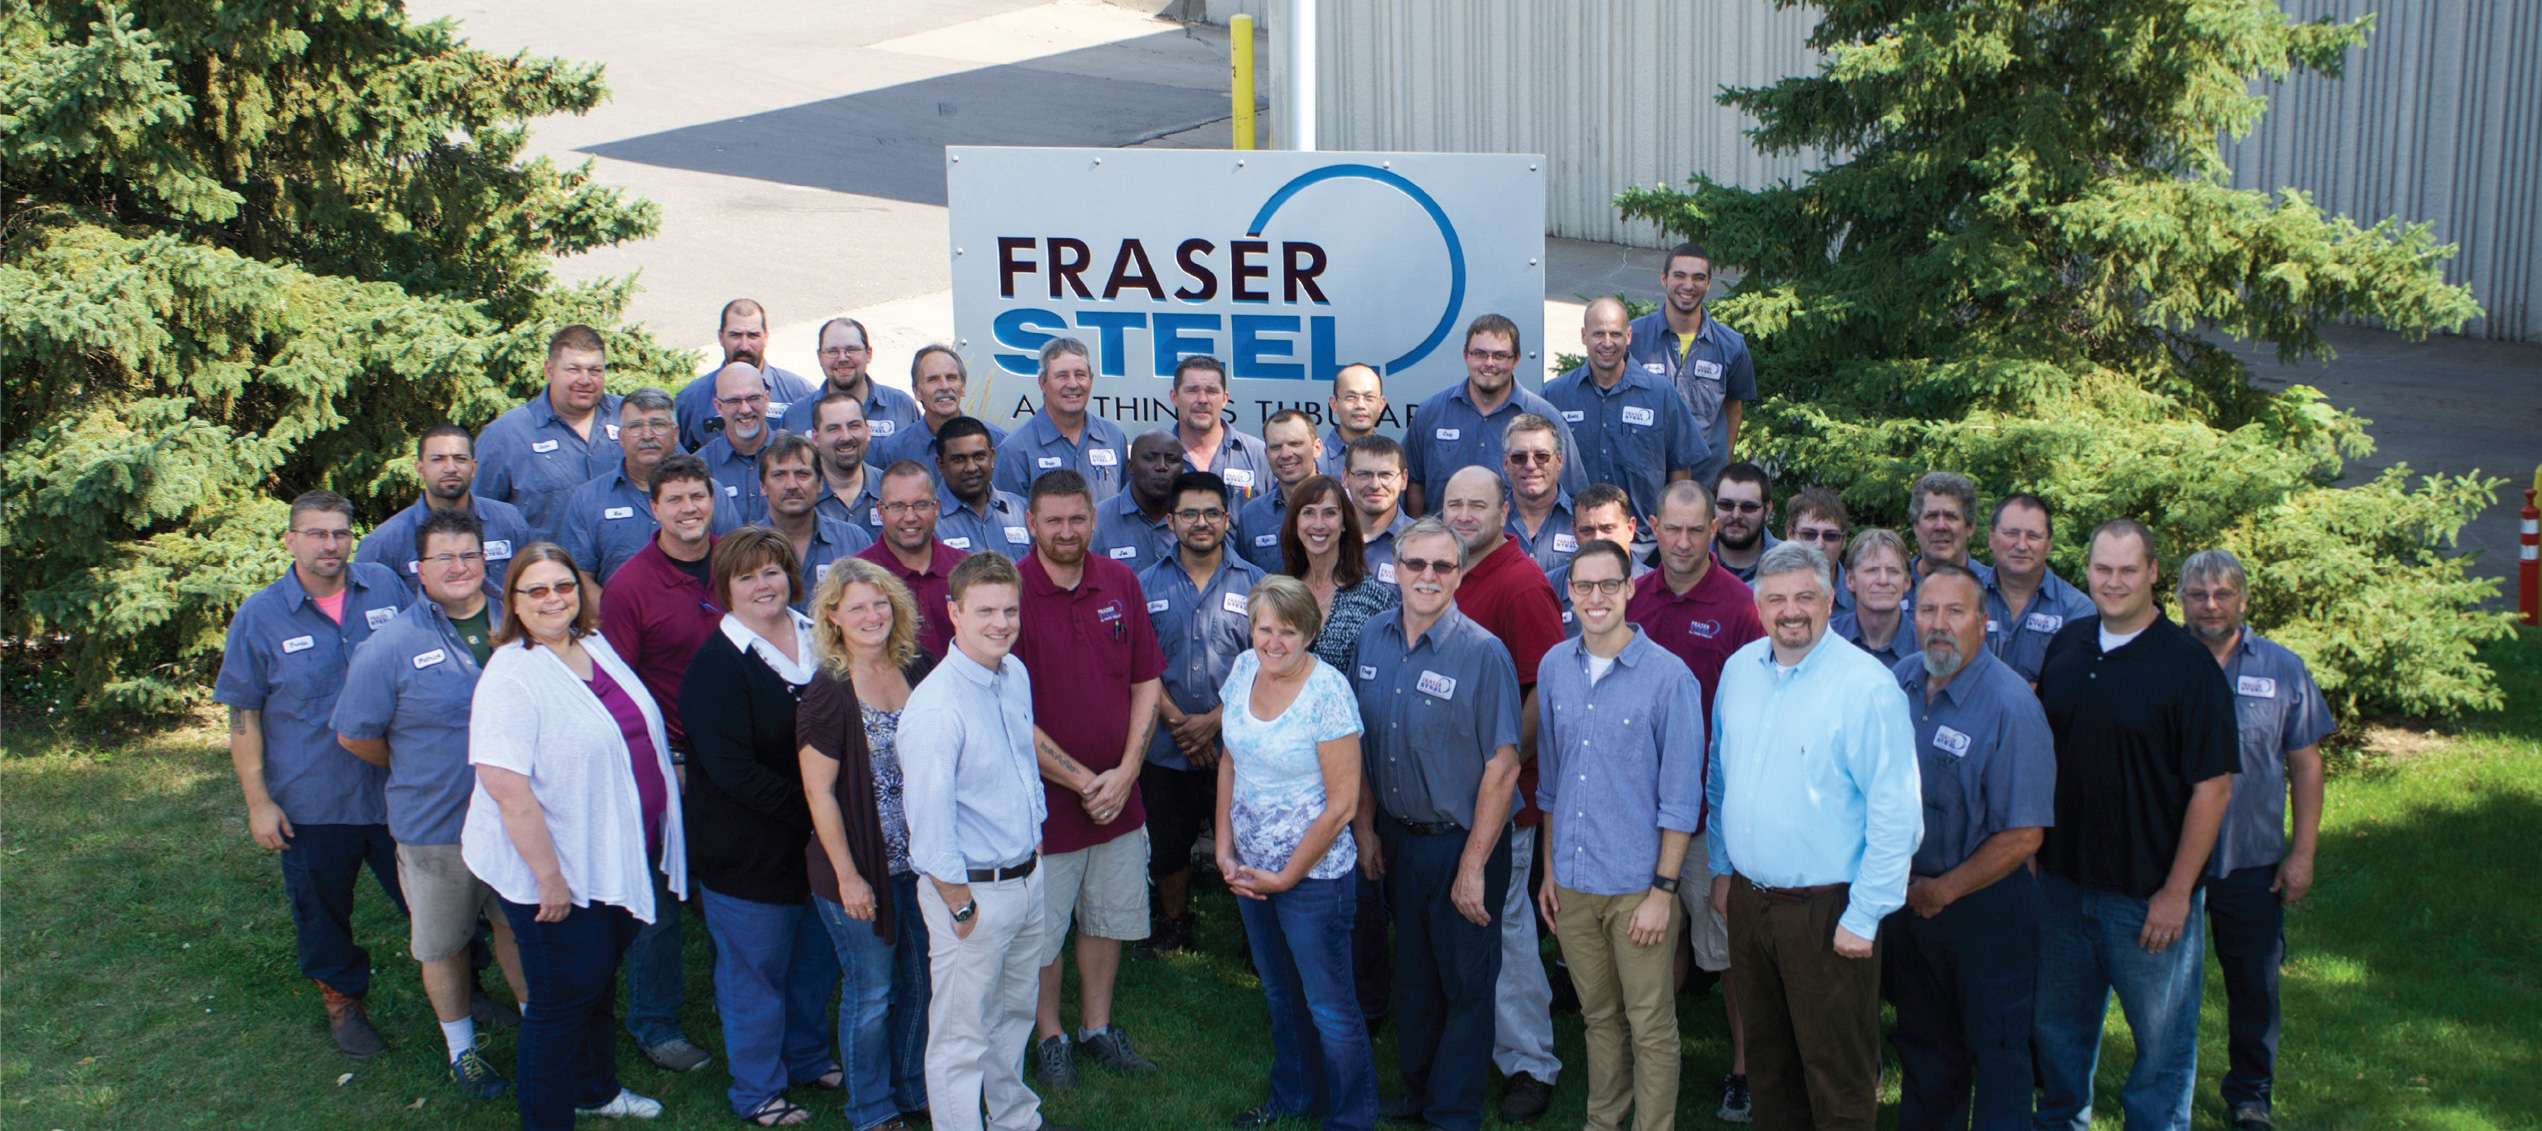 Fraser Steel Group Photo 2016